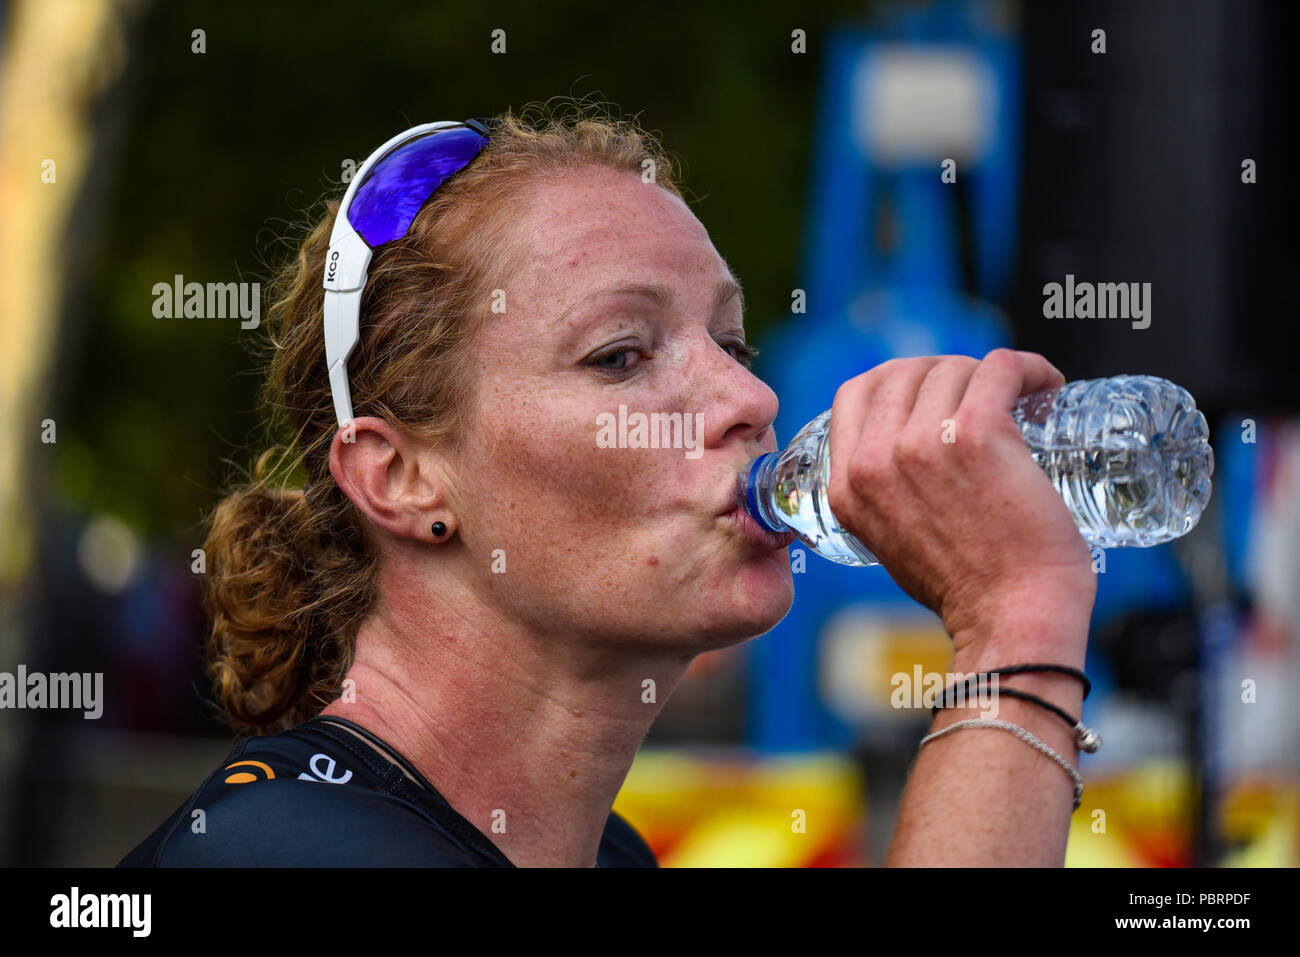 Kirsten Wild of team Wiggle High5 drinking water after winning the Prudential RideLondon Classique women's cycle race Stock Photo